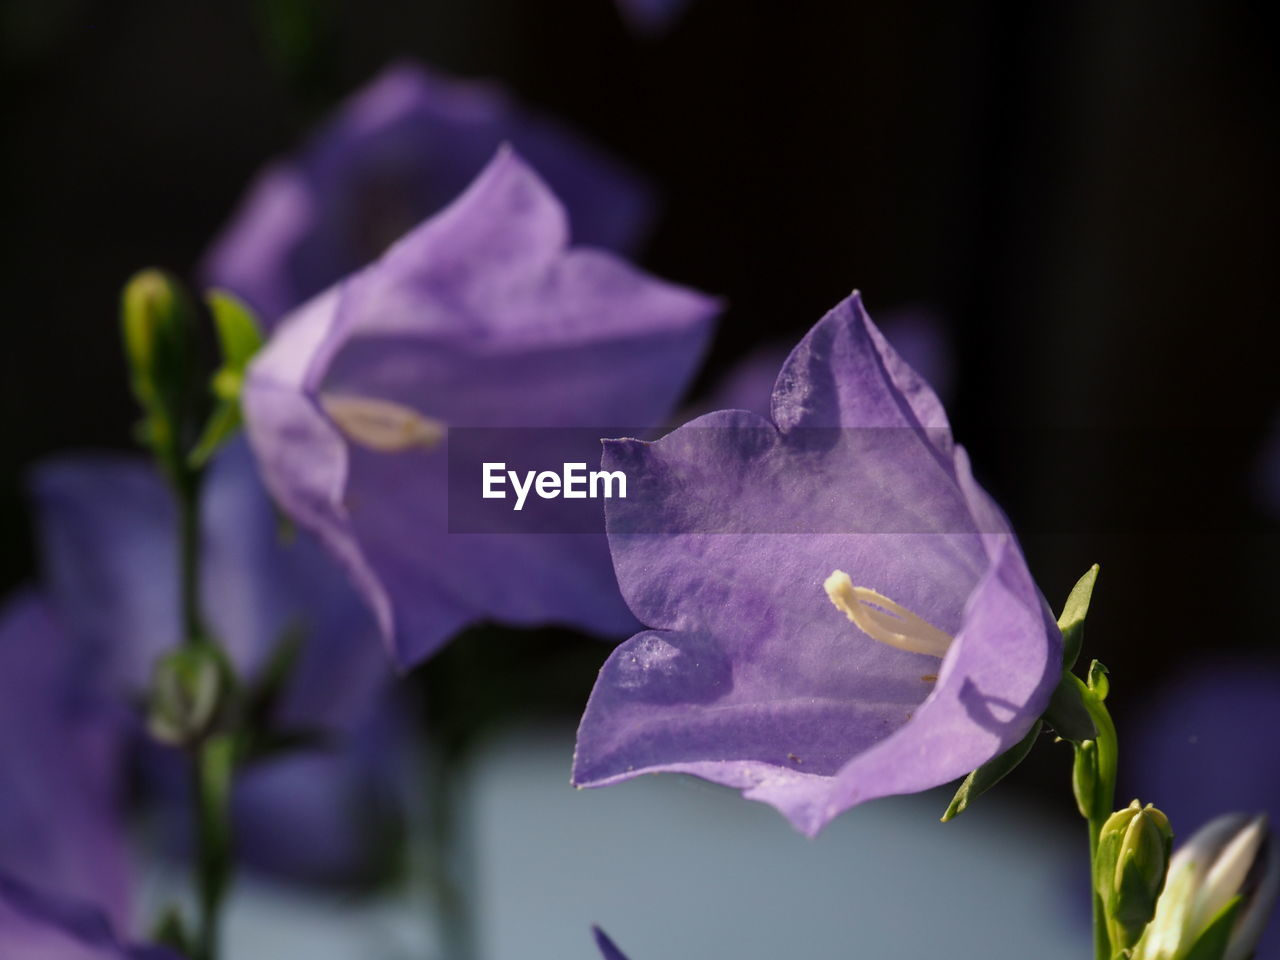 flower, flowering plant, petal, plant, beauty in nature, vulnerability, freshness, fragility, close-up, inflorescence, purple, flower head, growth, nature, focus on foreground, no people, selective focus, outdoors, leaf, plant part